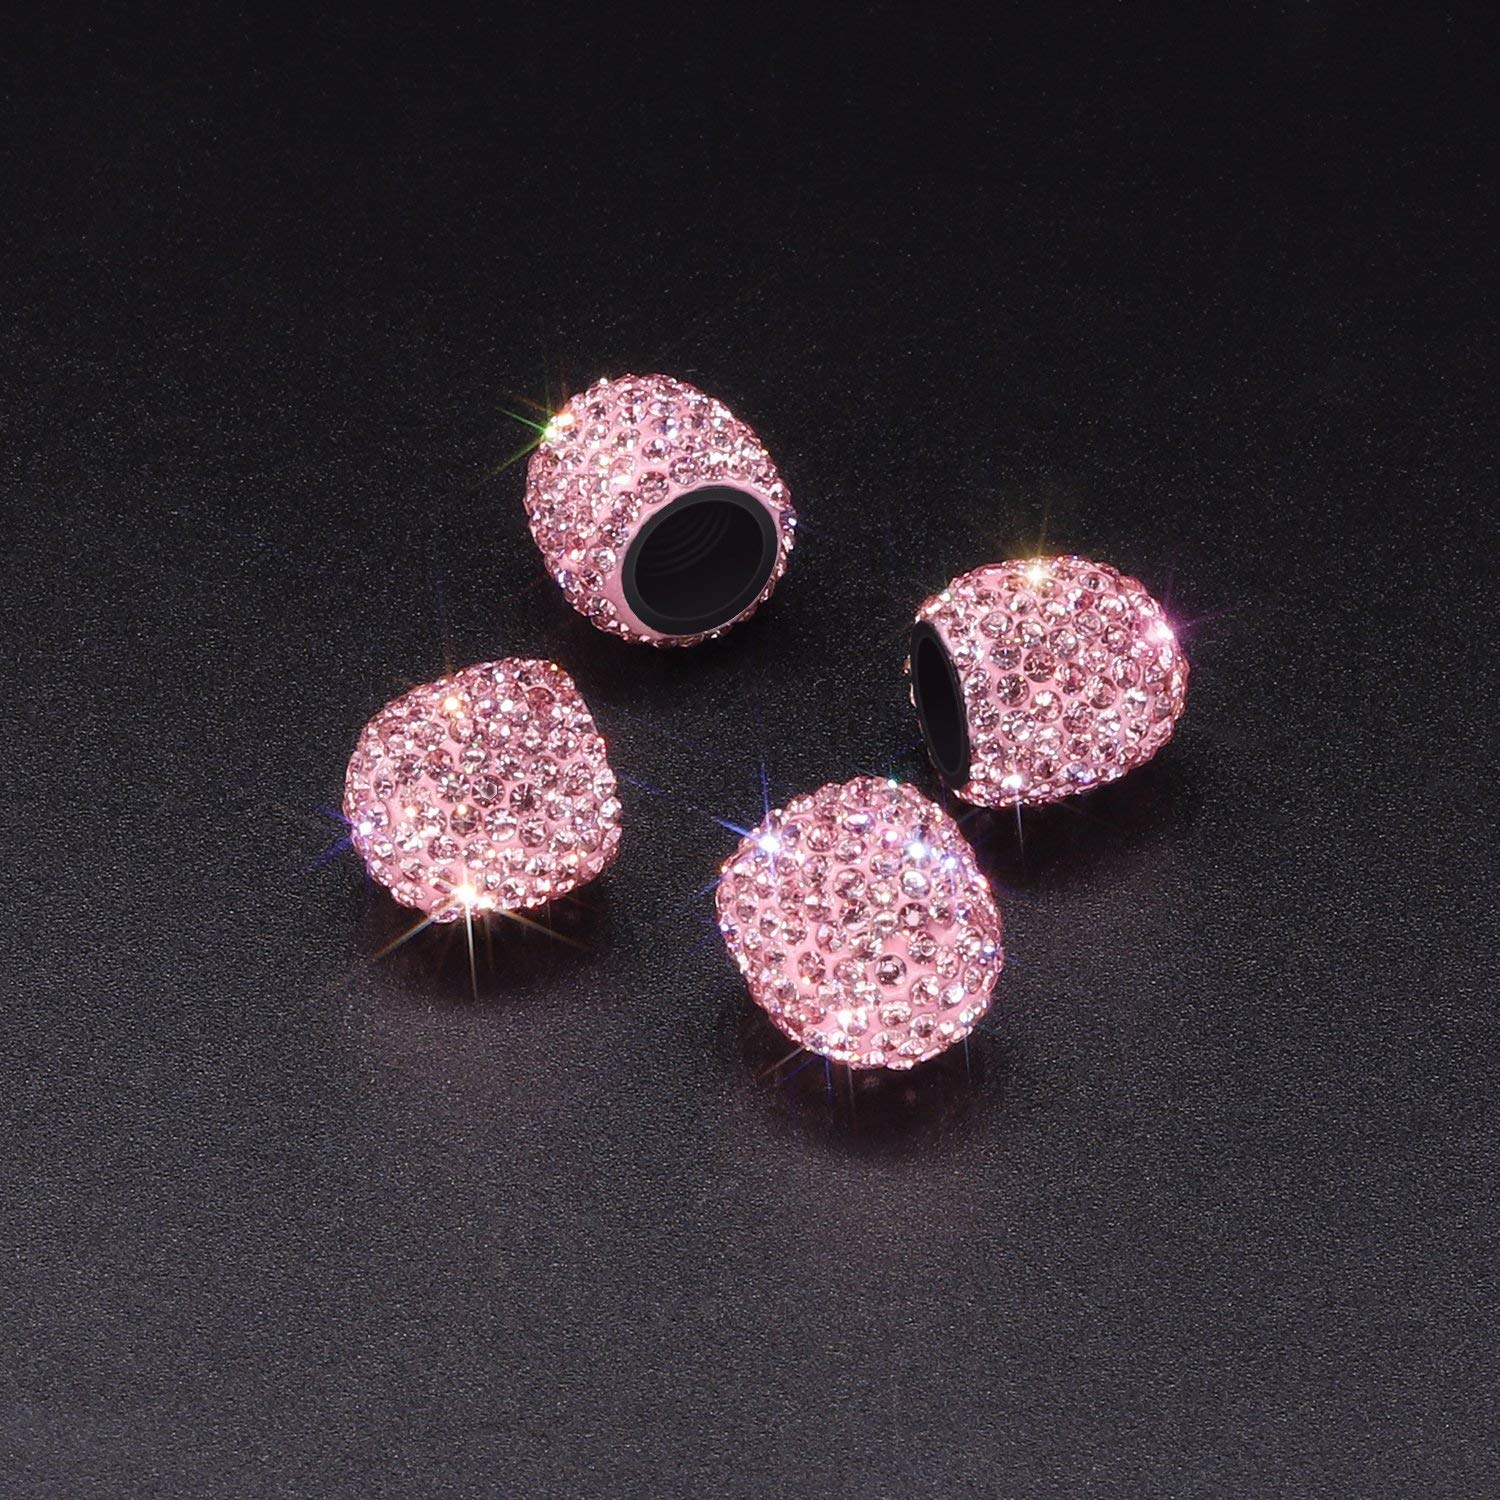 Y-SPACE 4 Pieces bling tire valve caps Handmade Crystal Rhinestone Tire Valve Dust Caps Car Accessories Pink